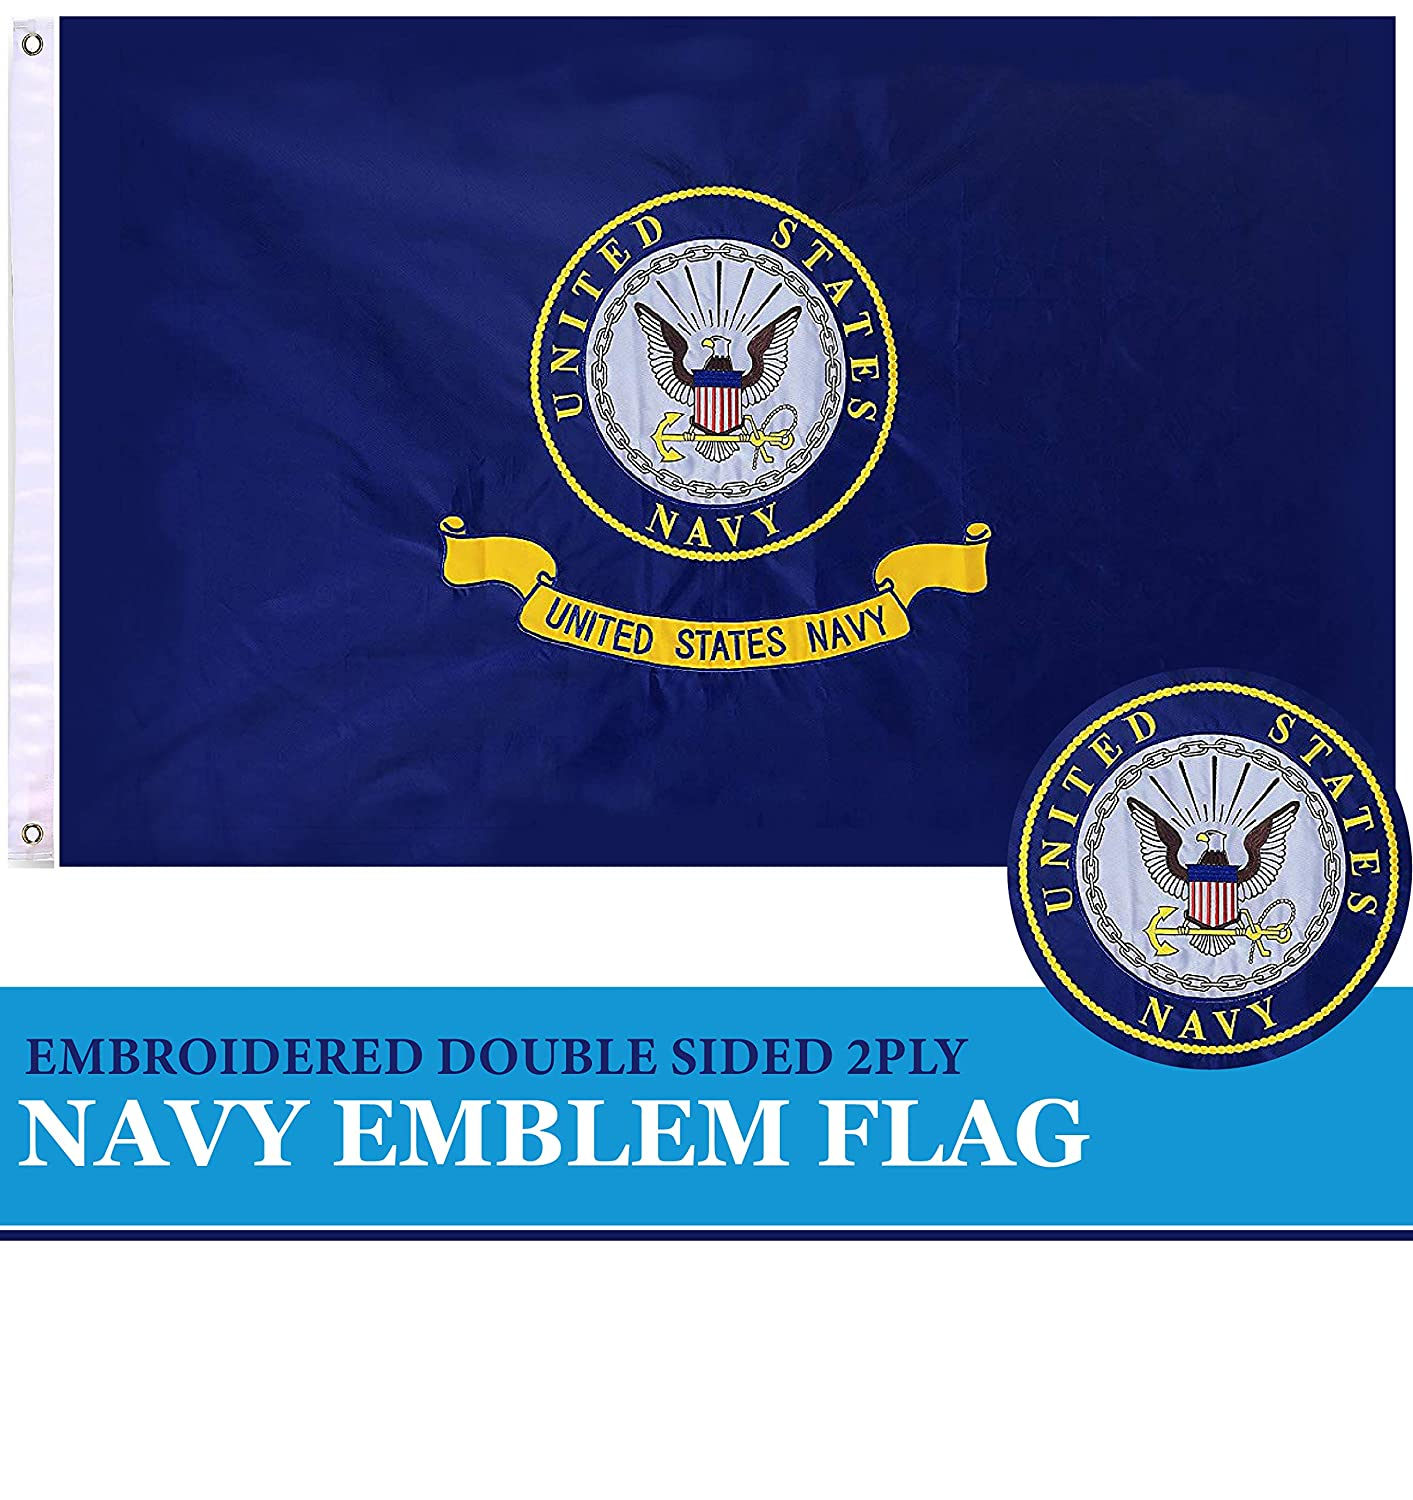 G128 - US Navy Flag Navy Emblem Navy Seal Logo Double Sided Embroidered 2x3 ft Flag with Brass Grommets